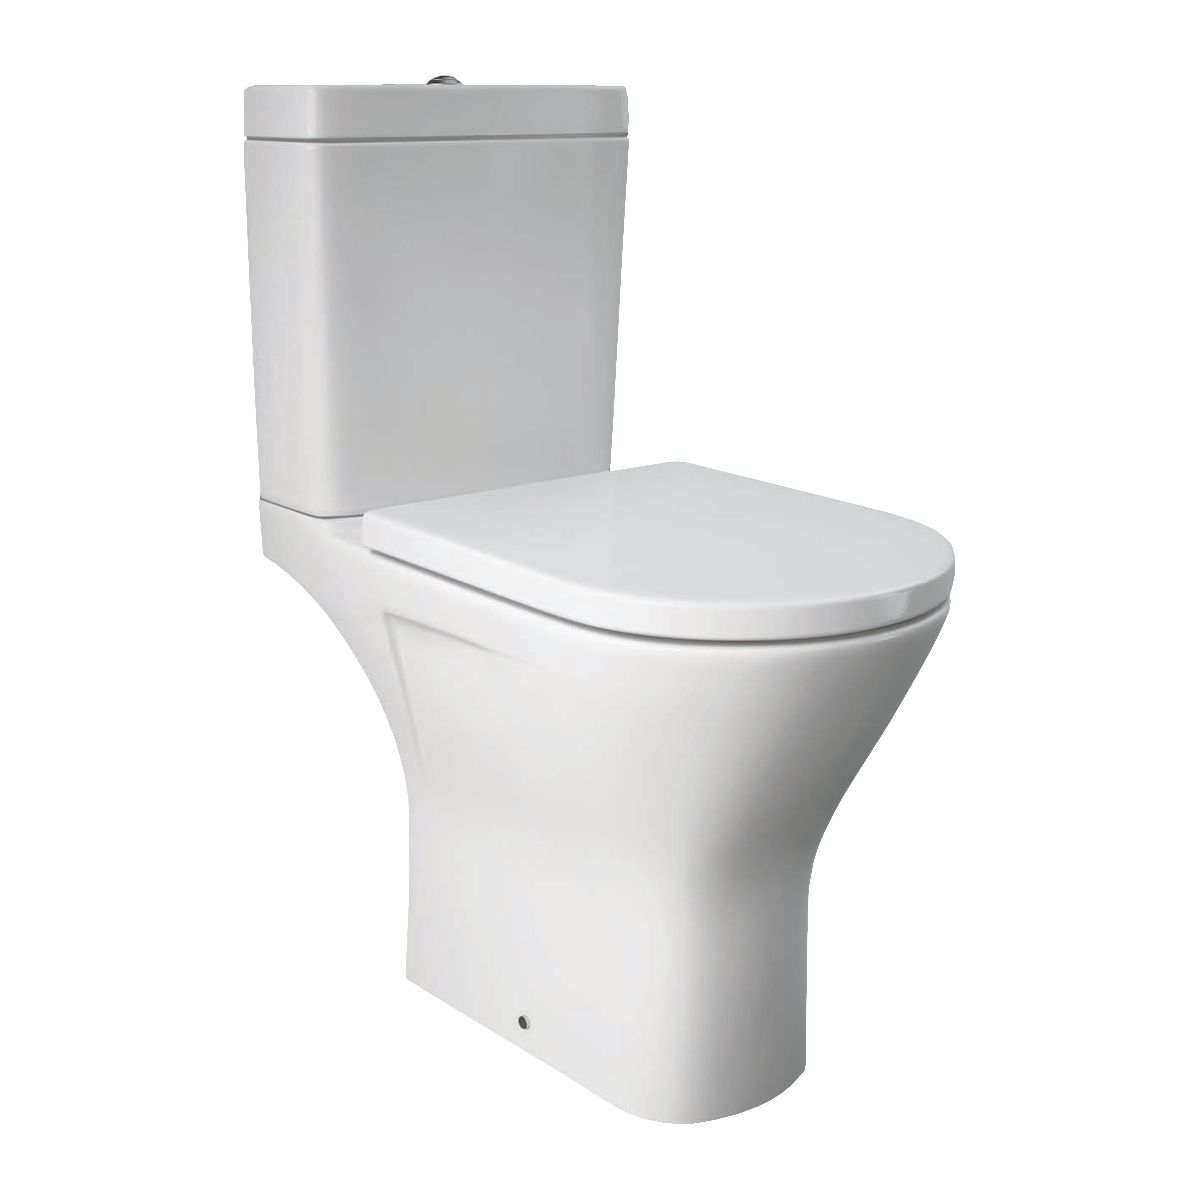 RAK Resort Mini Full Access Rimless Close Coupled Toilet